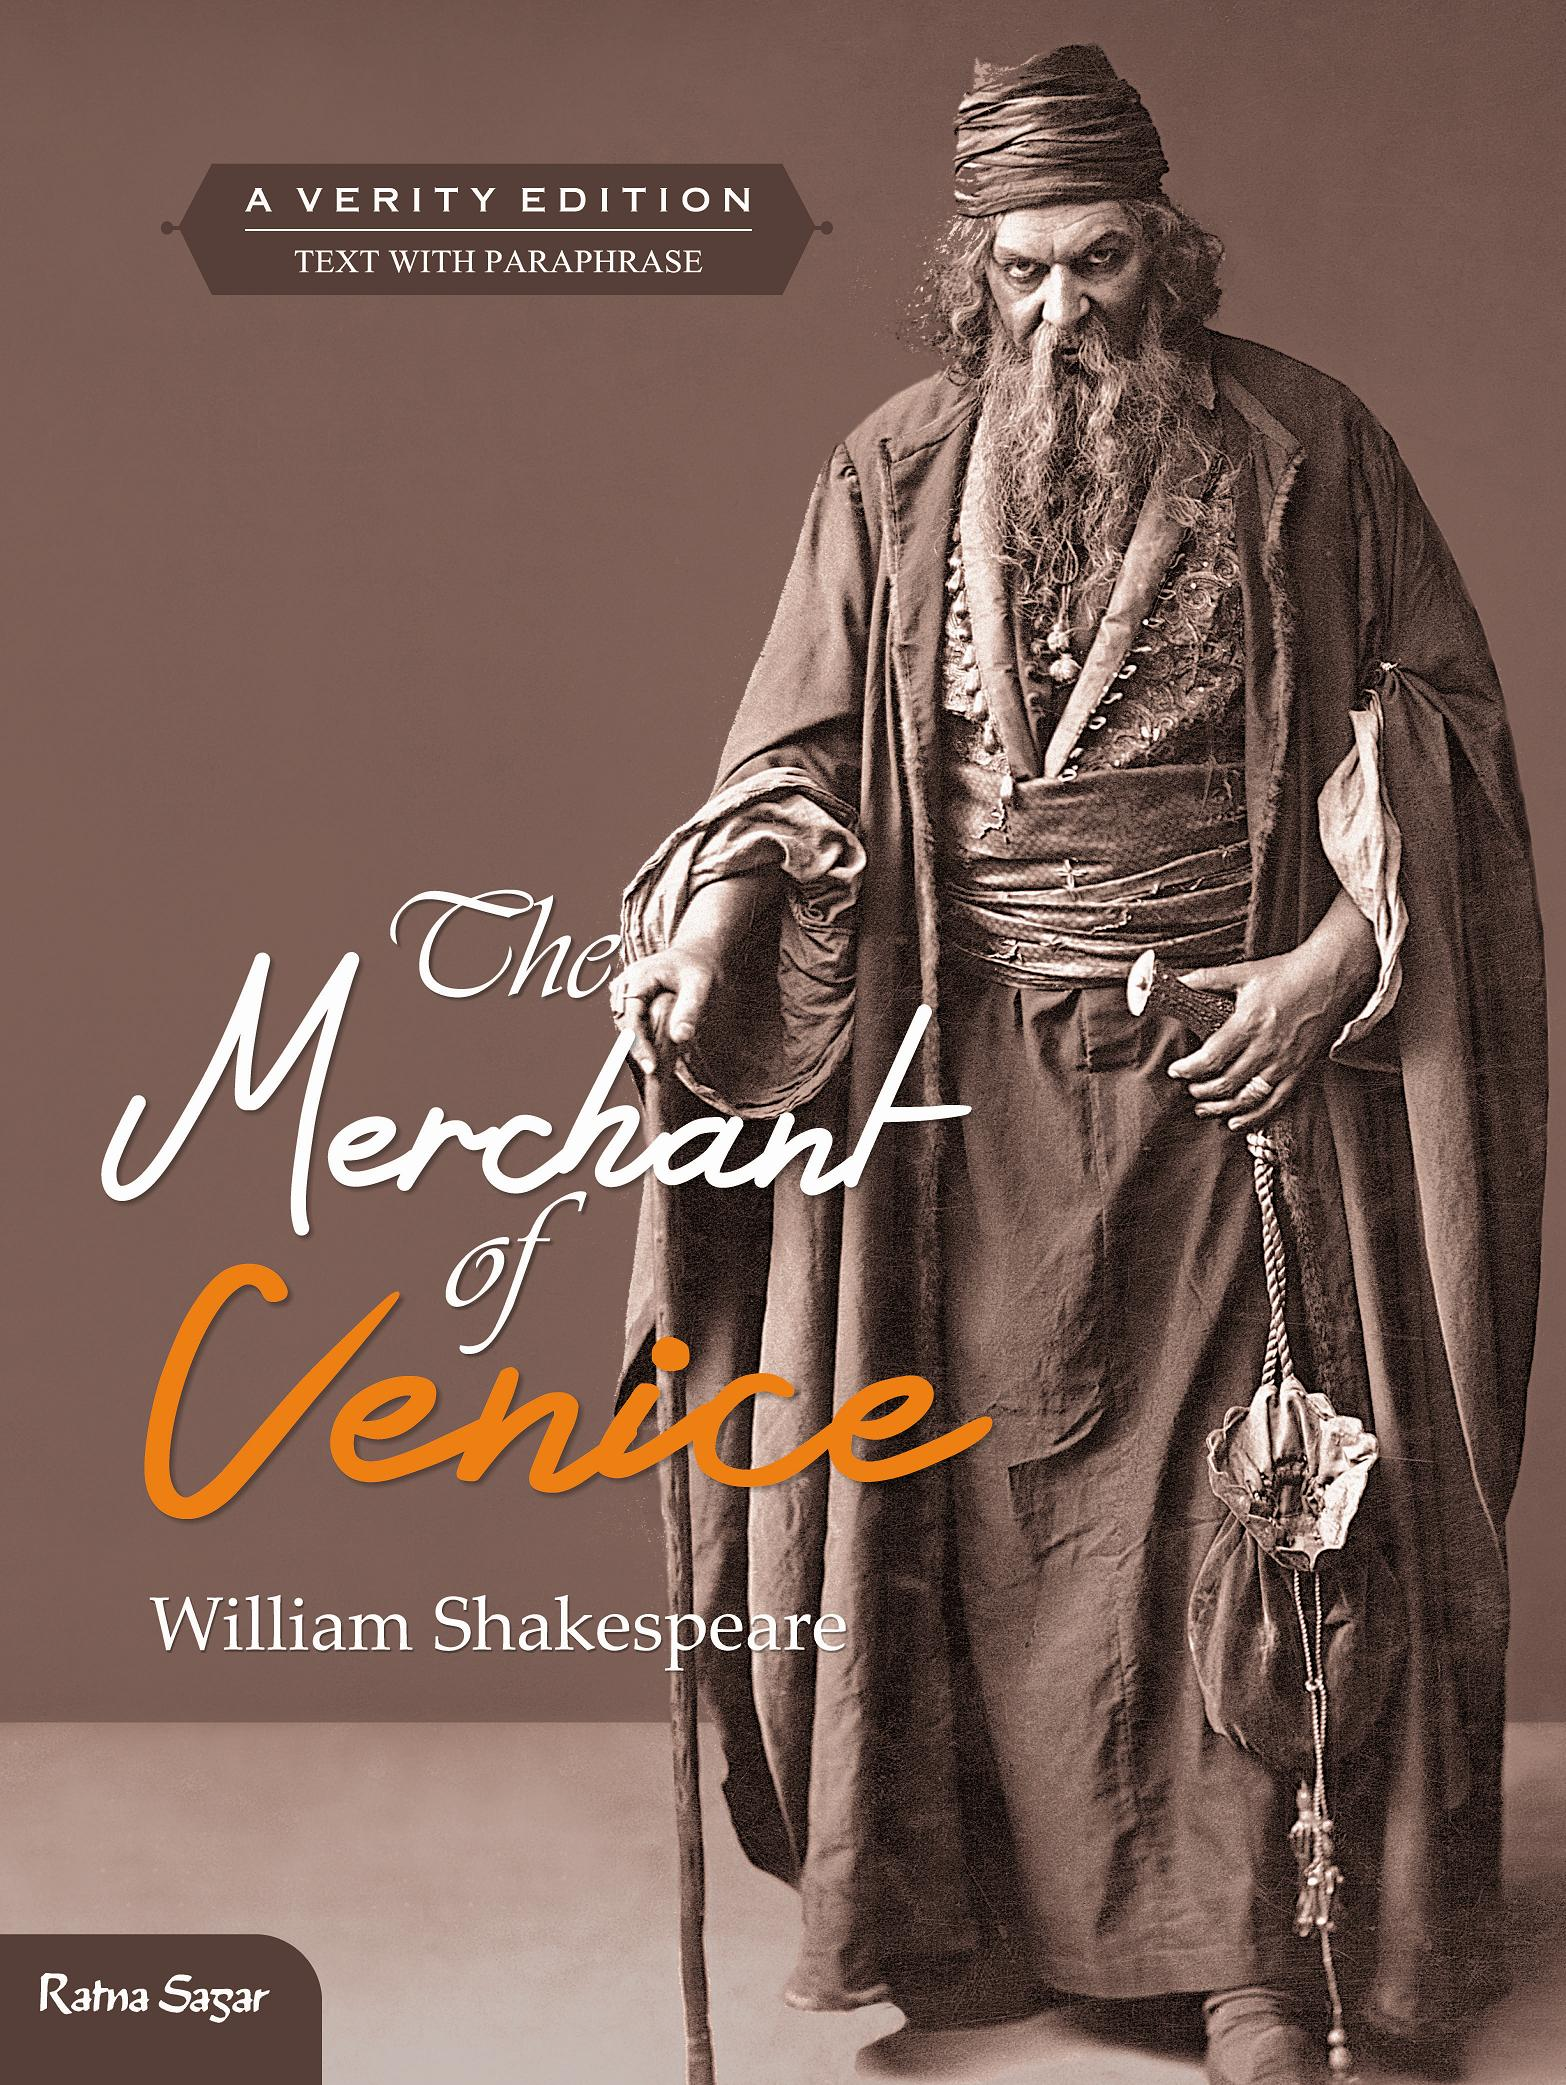 an analysis of the role of salarino and solanio in the play the merchant of venice by william shakes